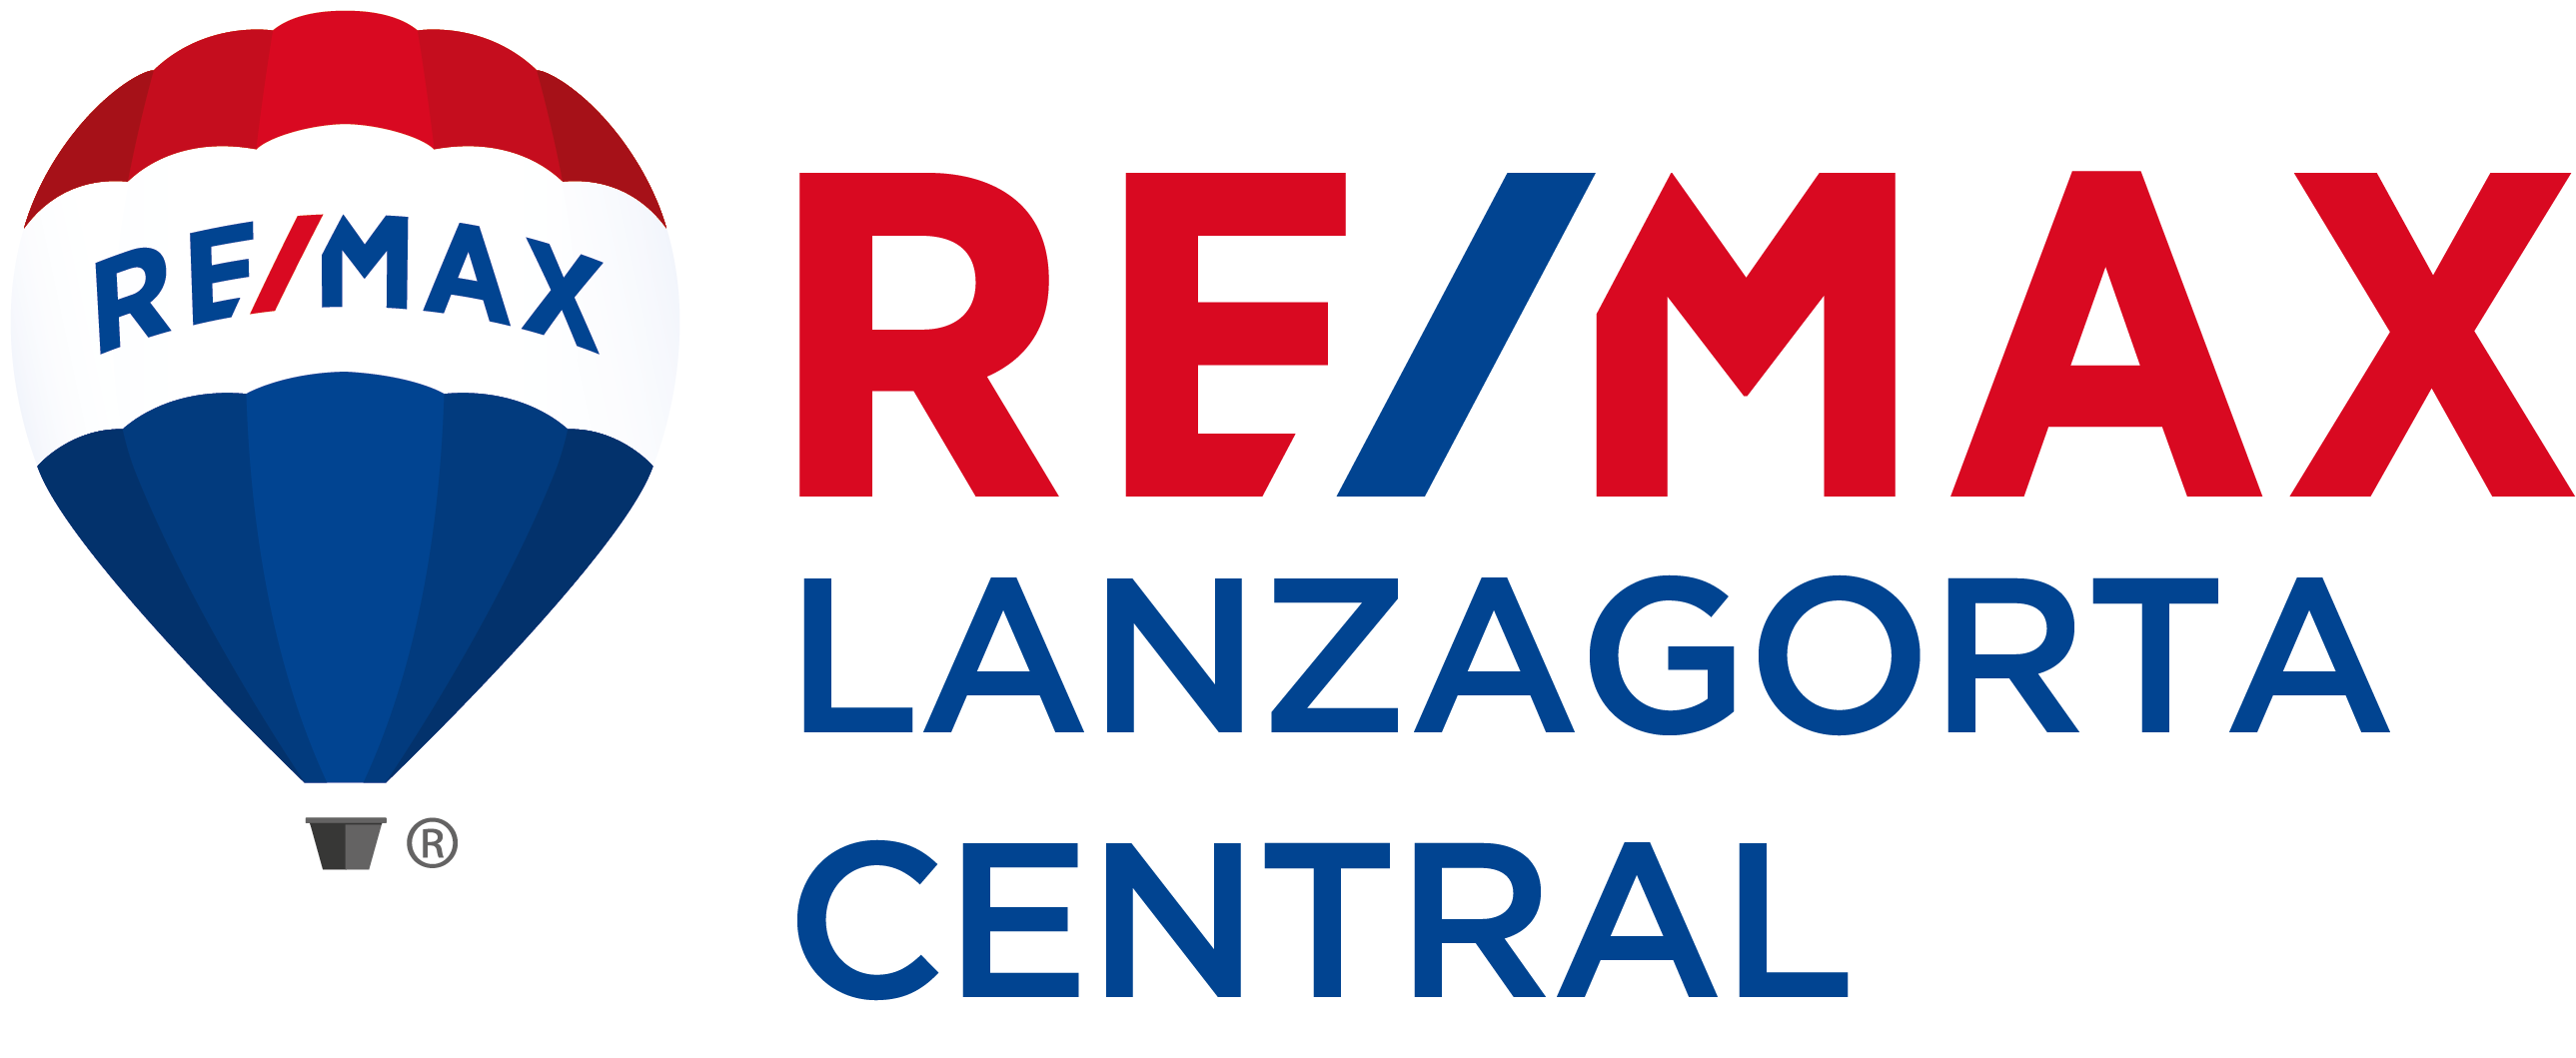 Remax Lanzagorta Central